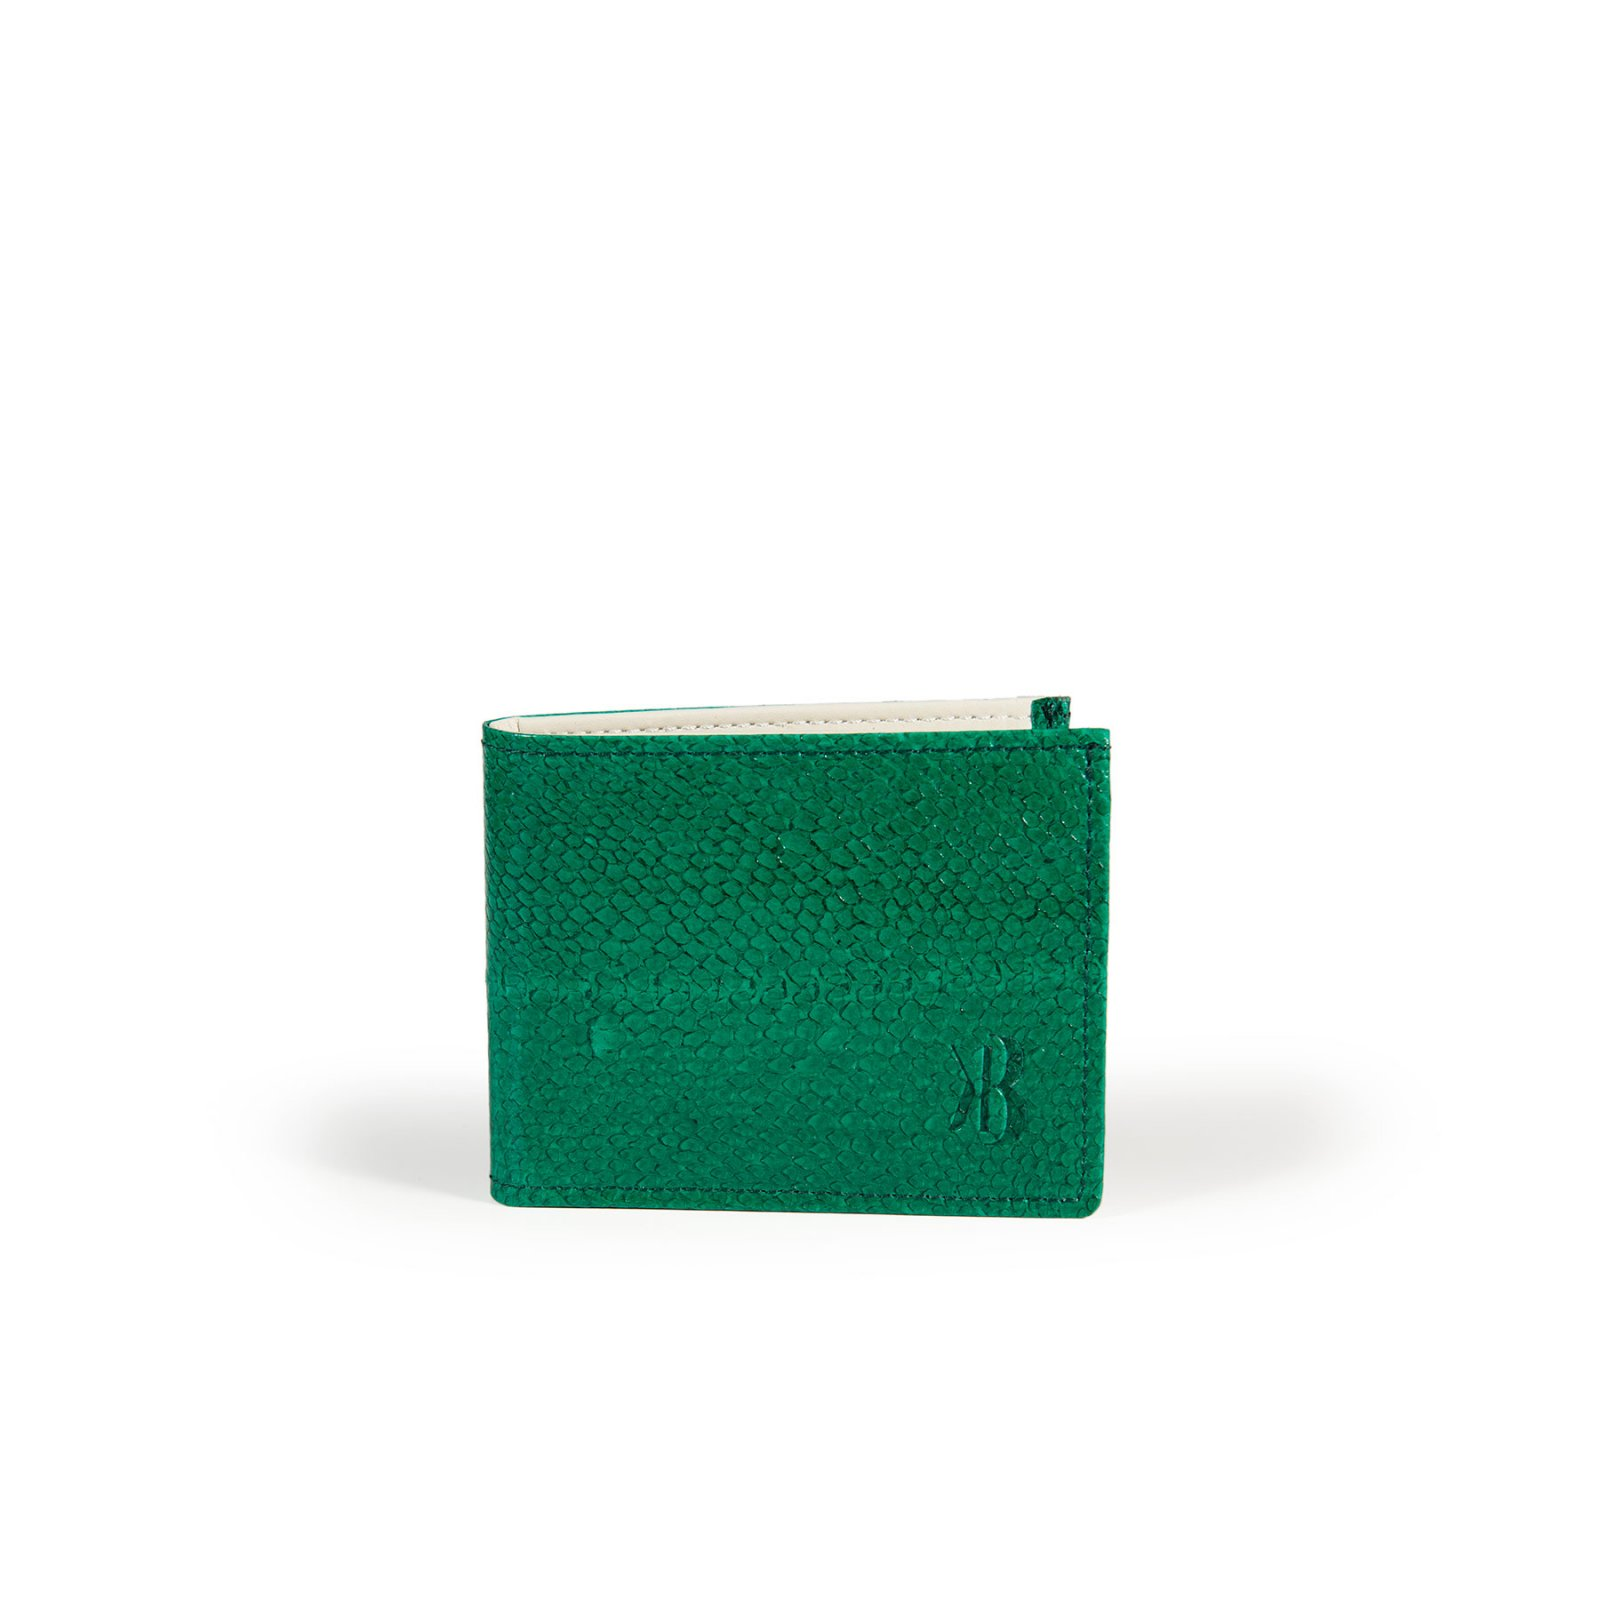 renee-paris-green-banka-men-leather-wallet-1